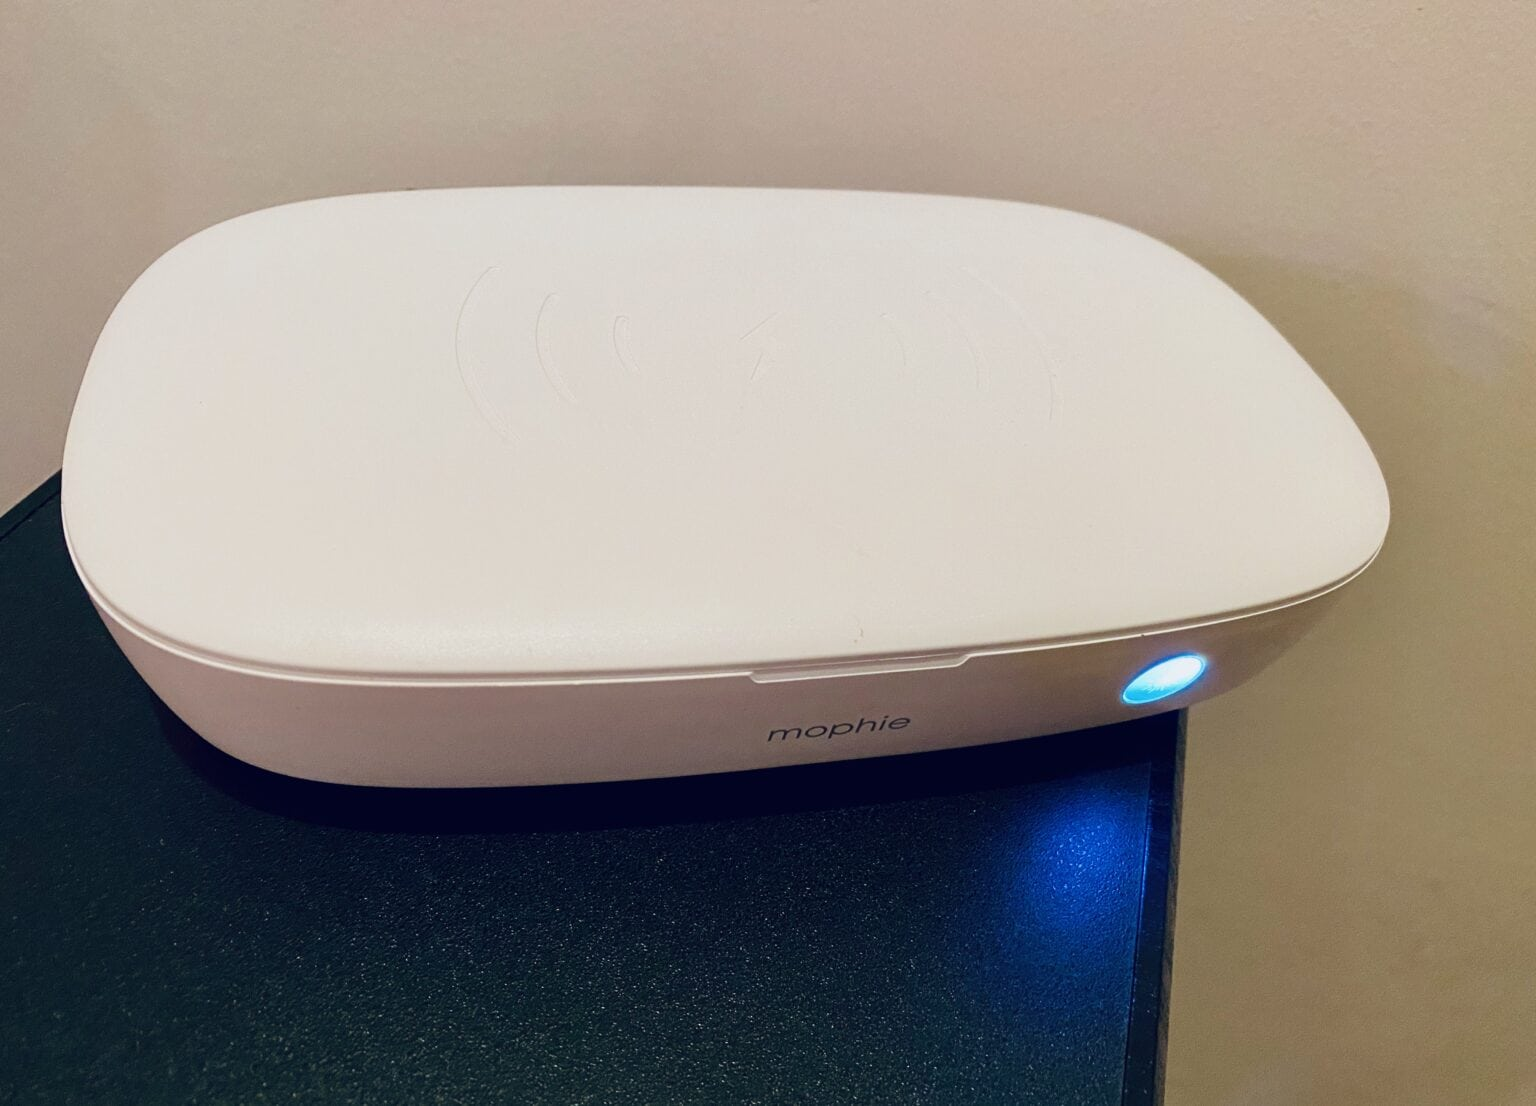 The Mophie UV Sanitizer With Wireless Charging can blast your iPhone with germ-killing ultraviolet light.